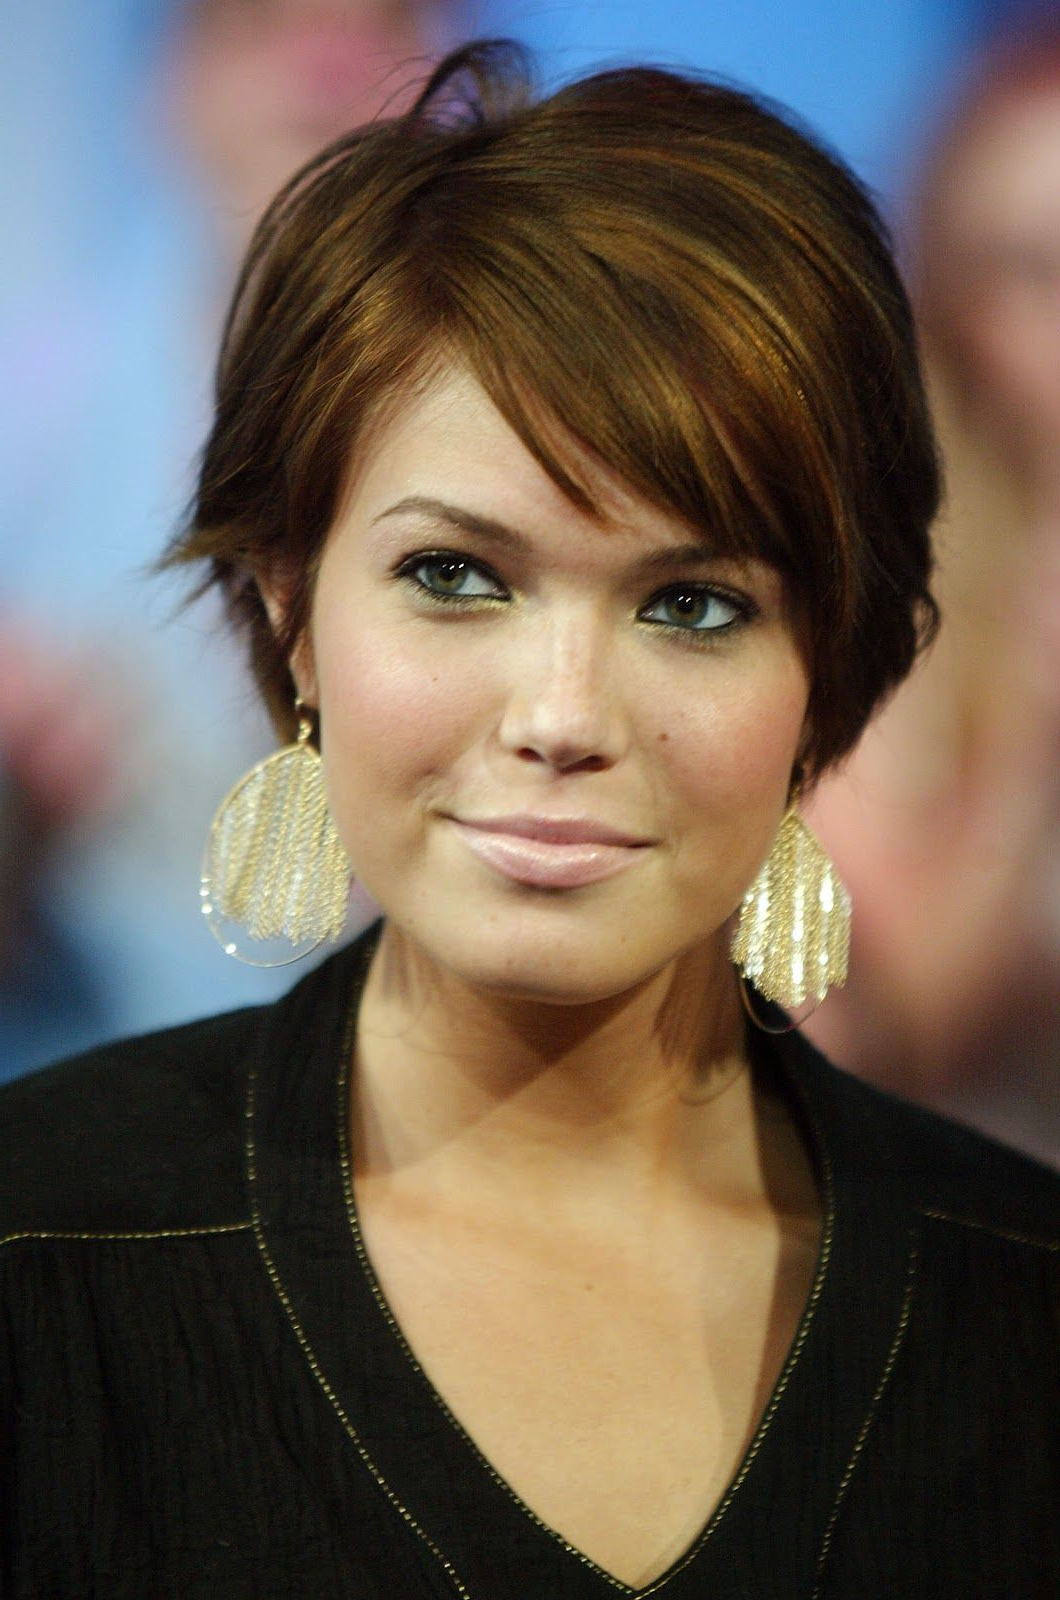 Justifying Shopaholism. : Hair Style: Hair Cut For Round Face within Short Hair For Chubby Cheeks